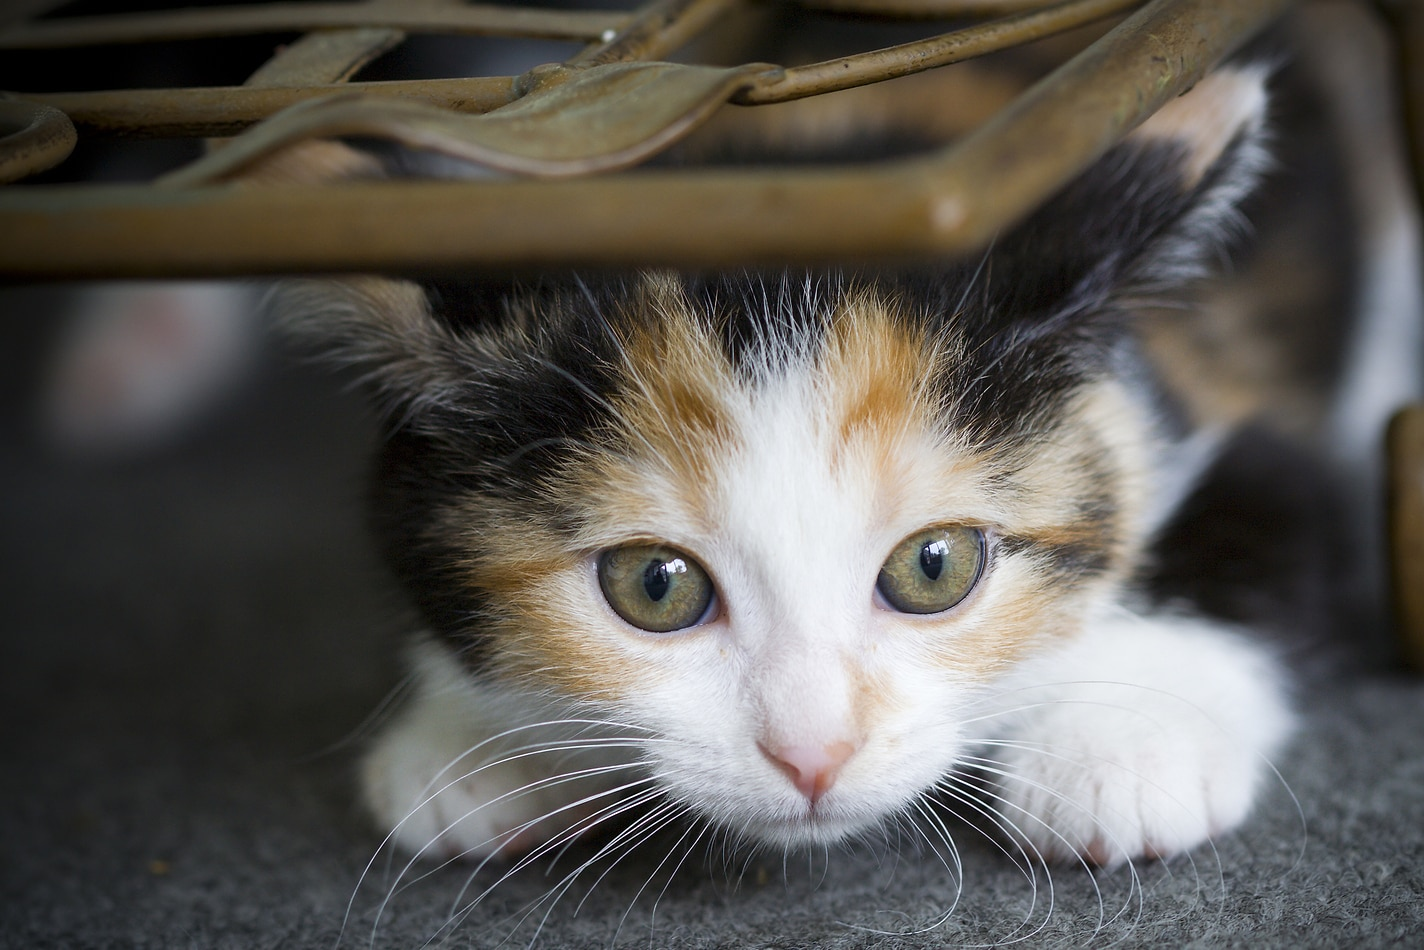 Small calico kitten crouches beneach a wicker chair.